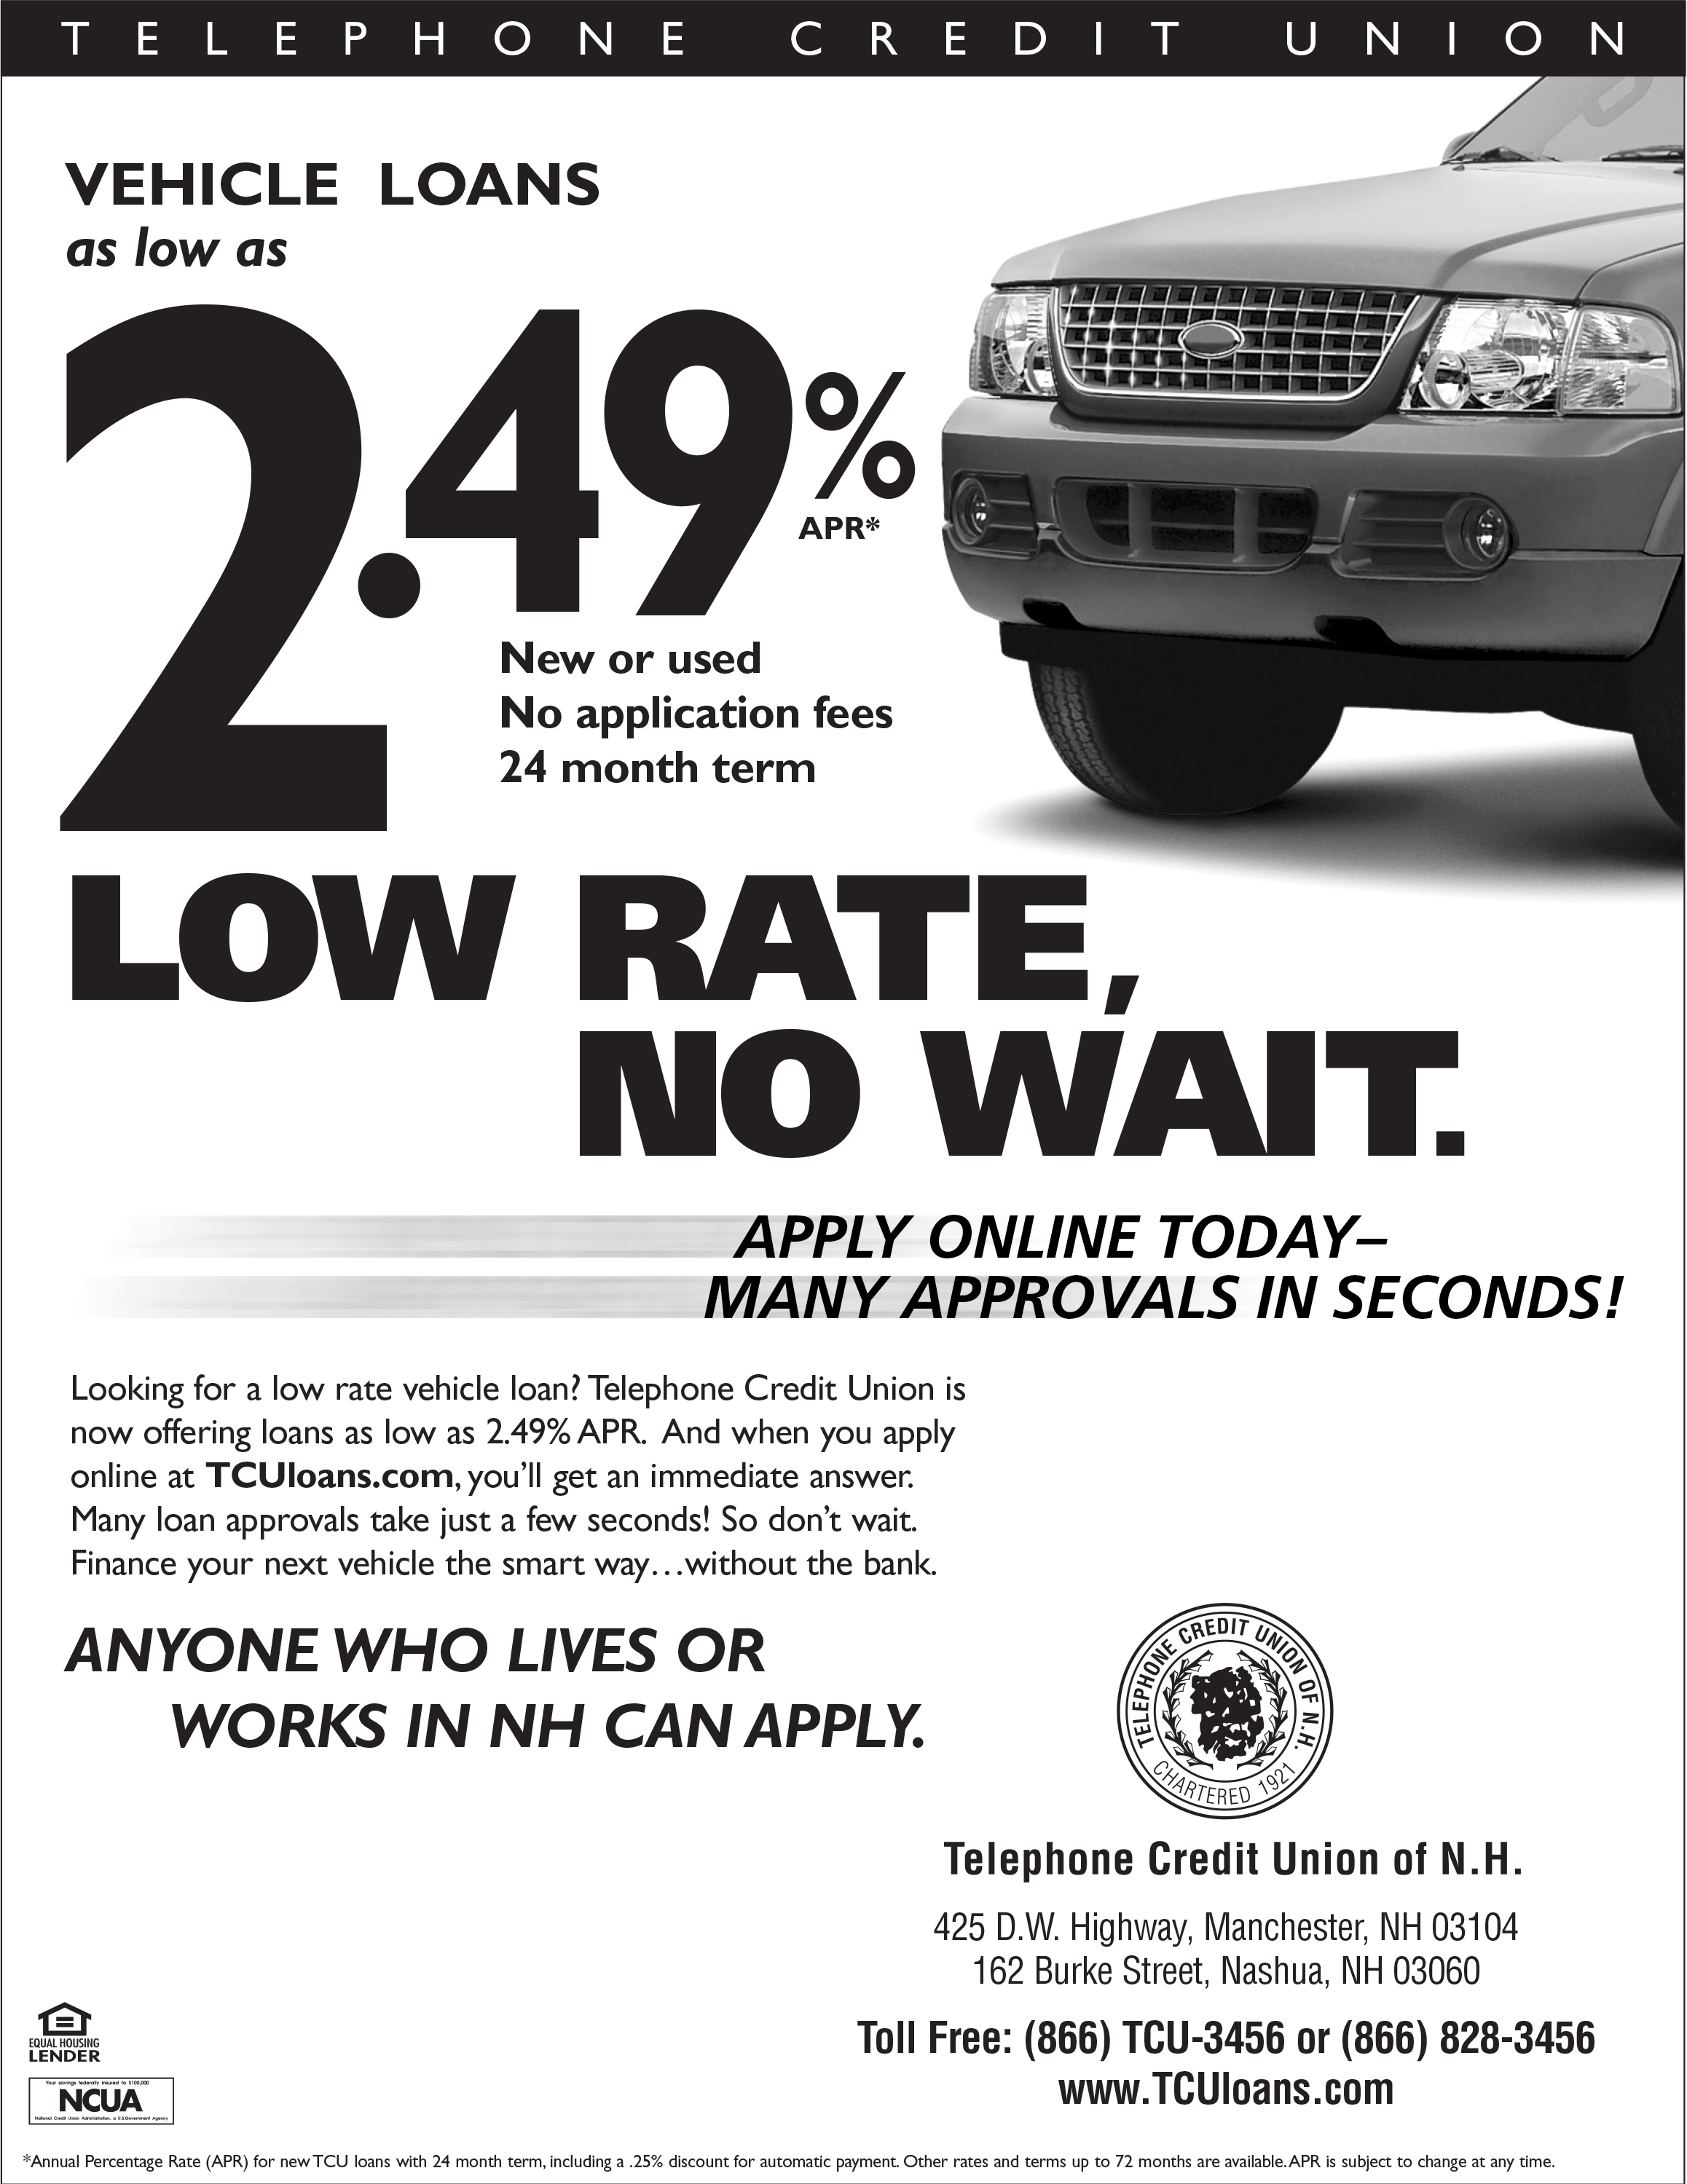 Telephone Credit Union - Car Loan Ad